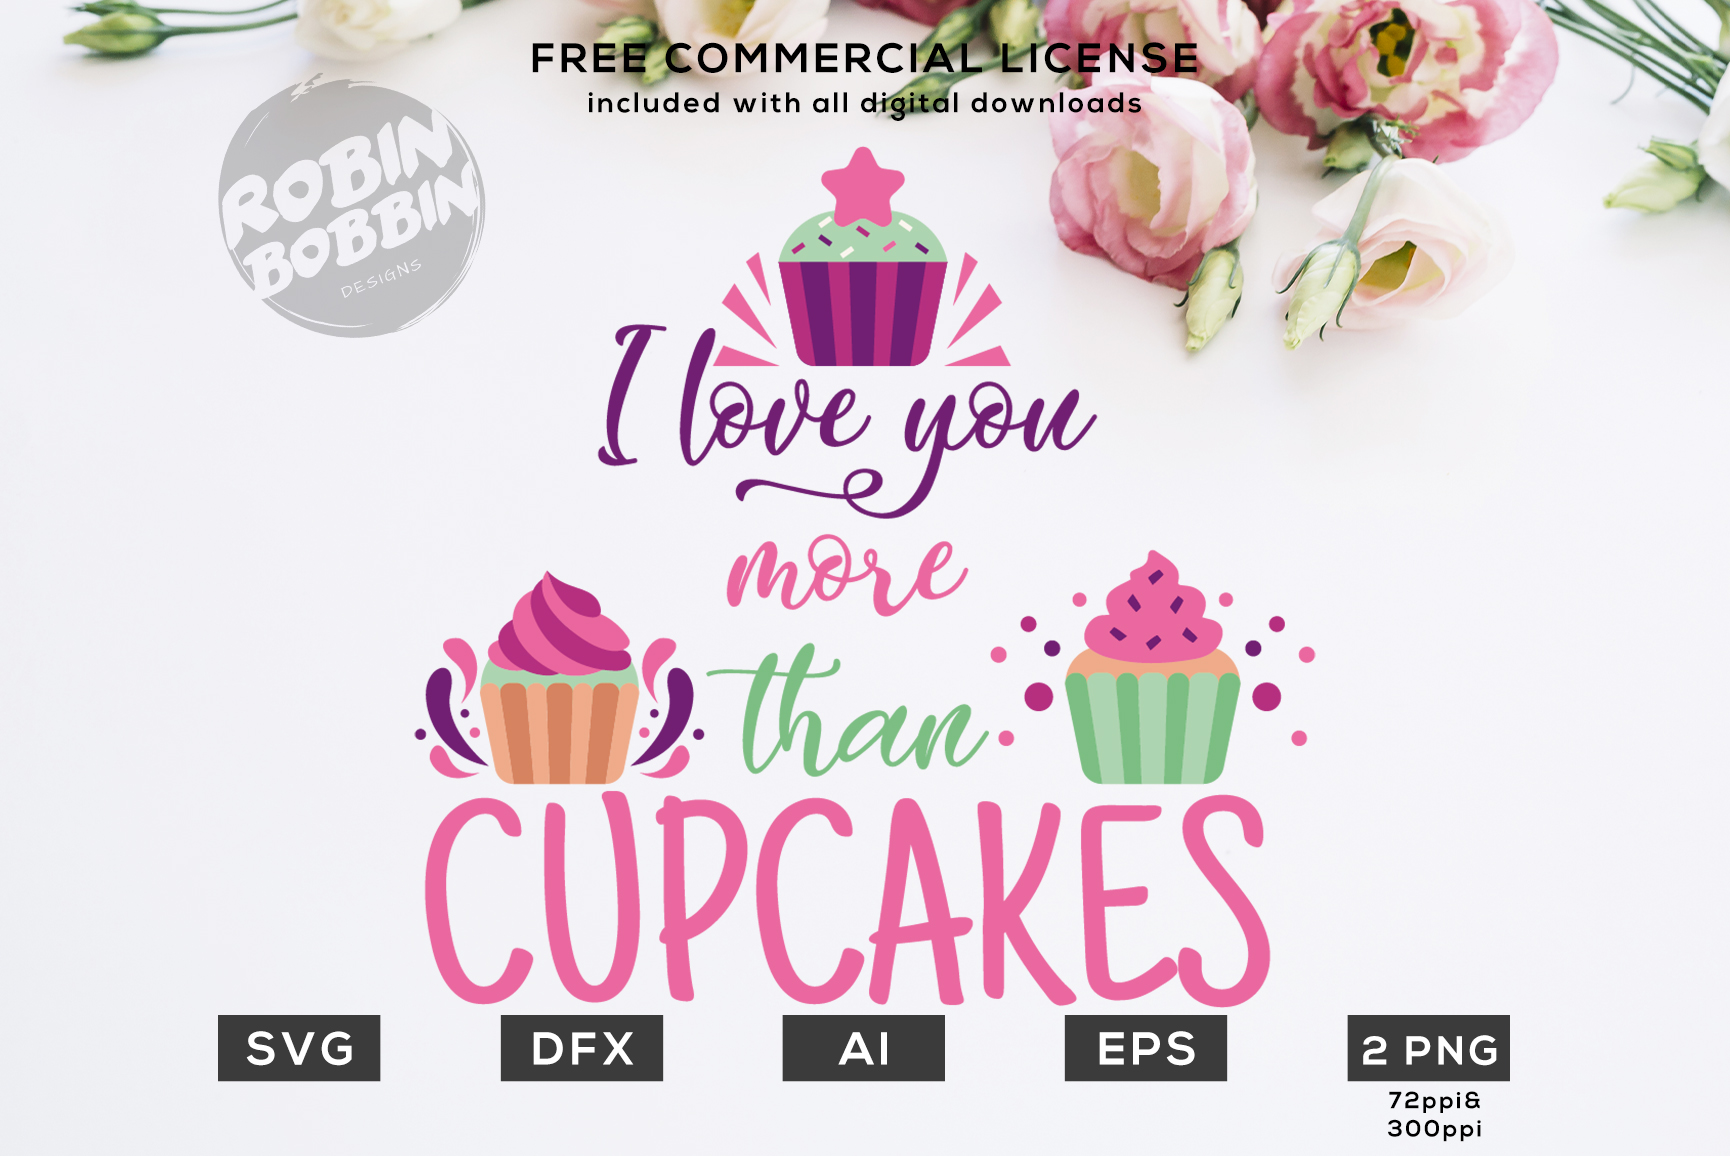 I Love You More Than Cupcakes Design for T-Shirt, Hoodies example image 1